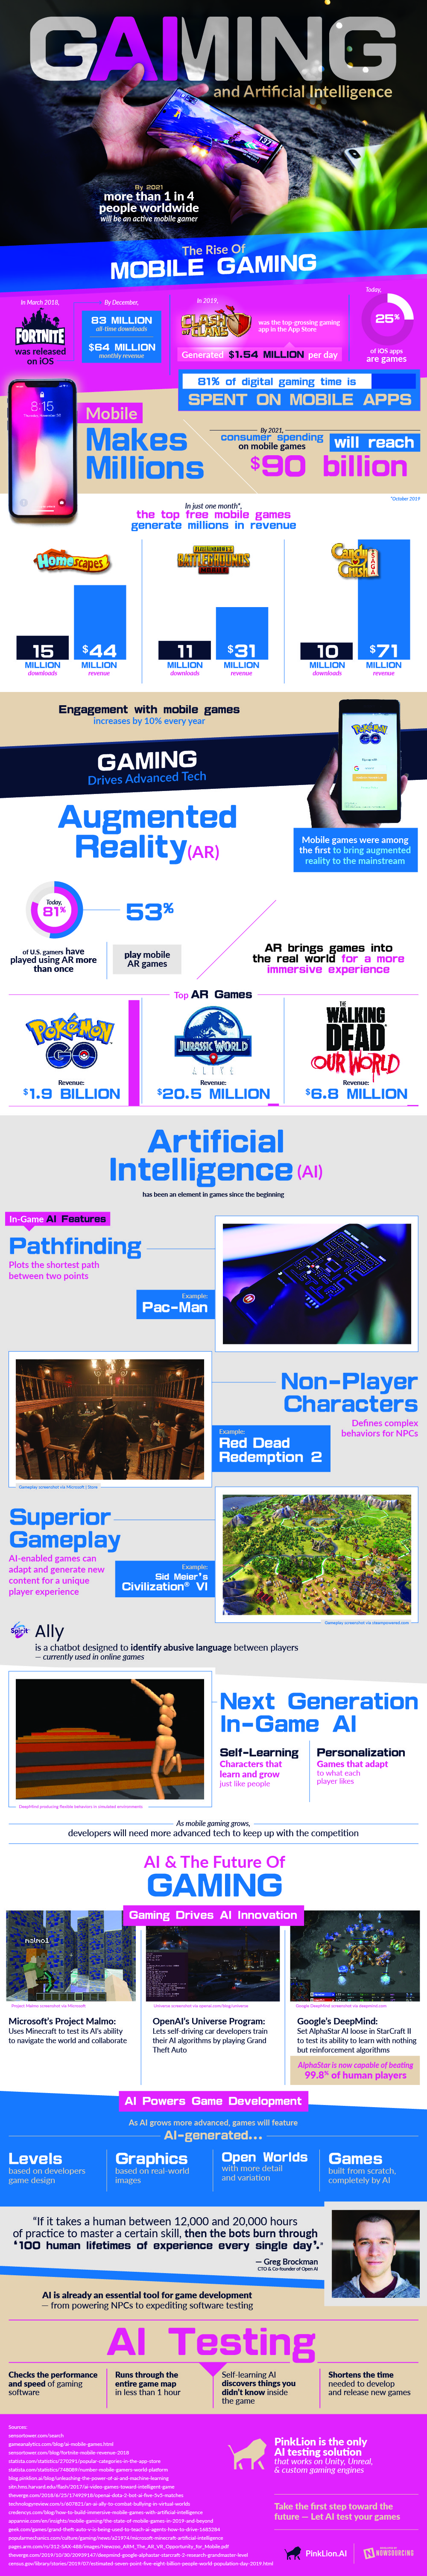 Gaming and Artificial Intelligence